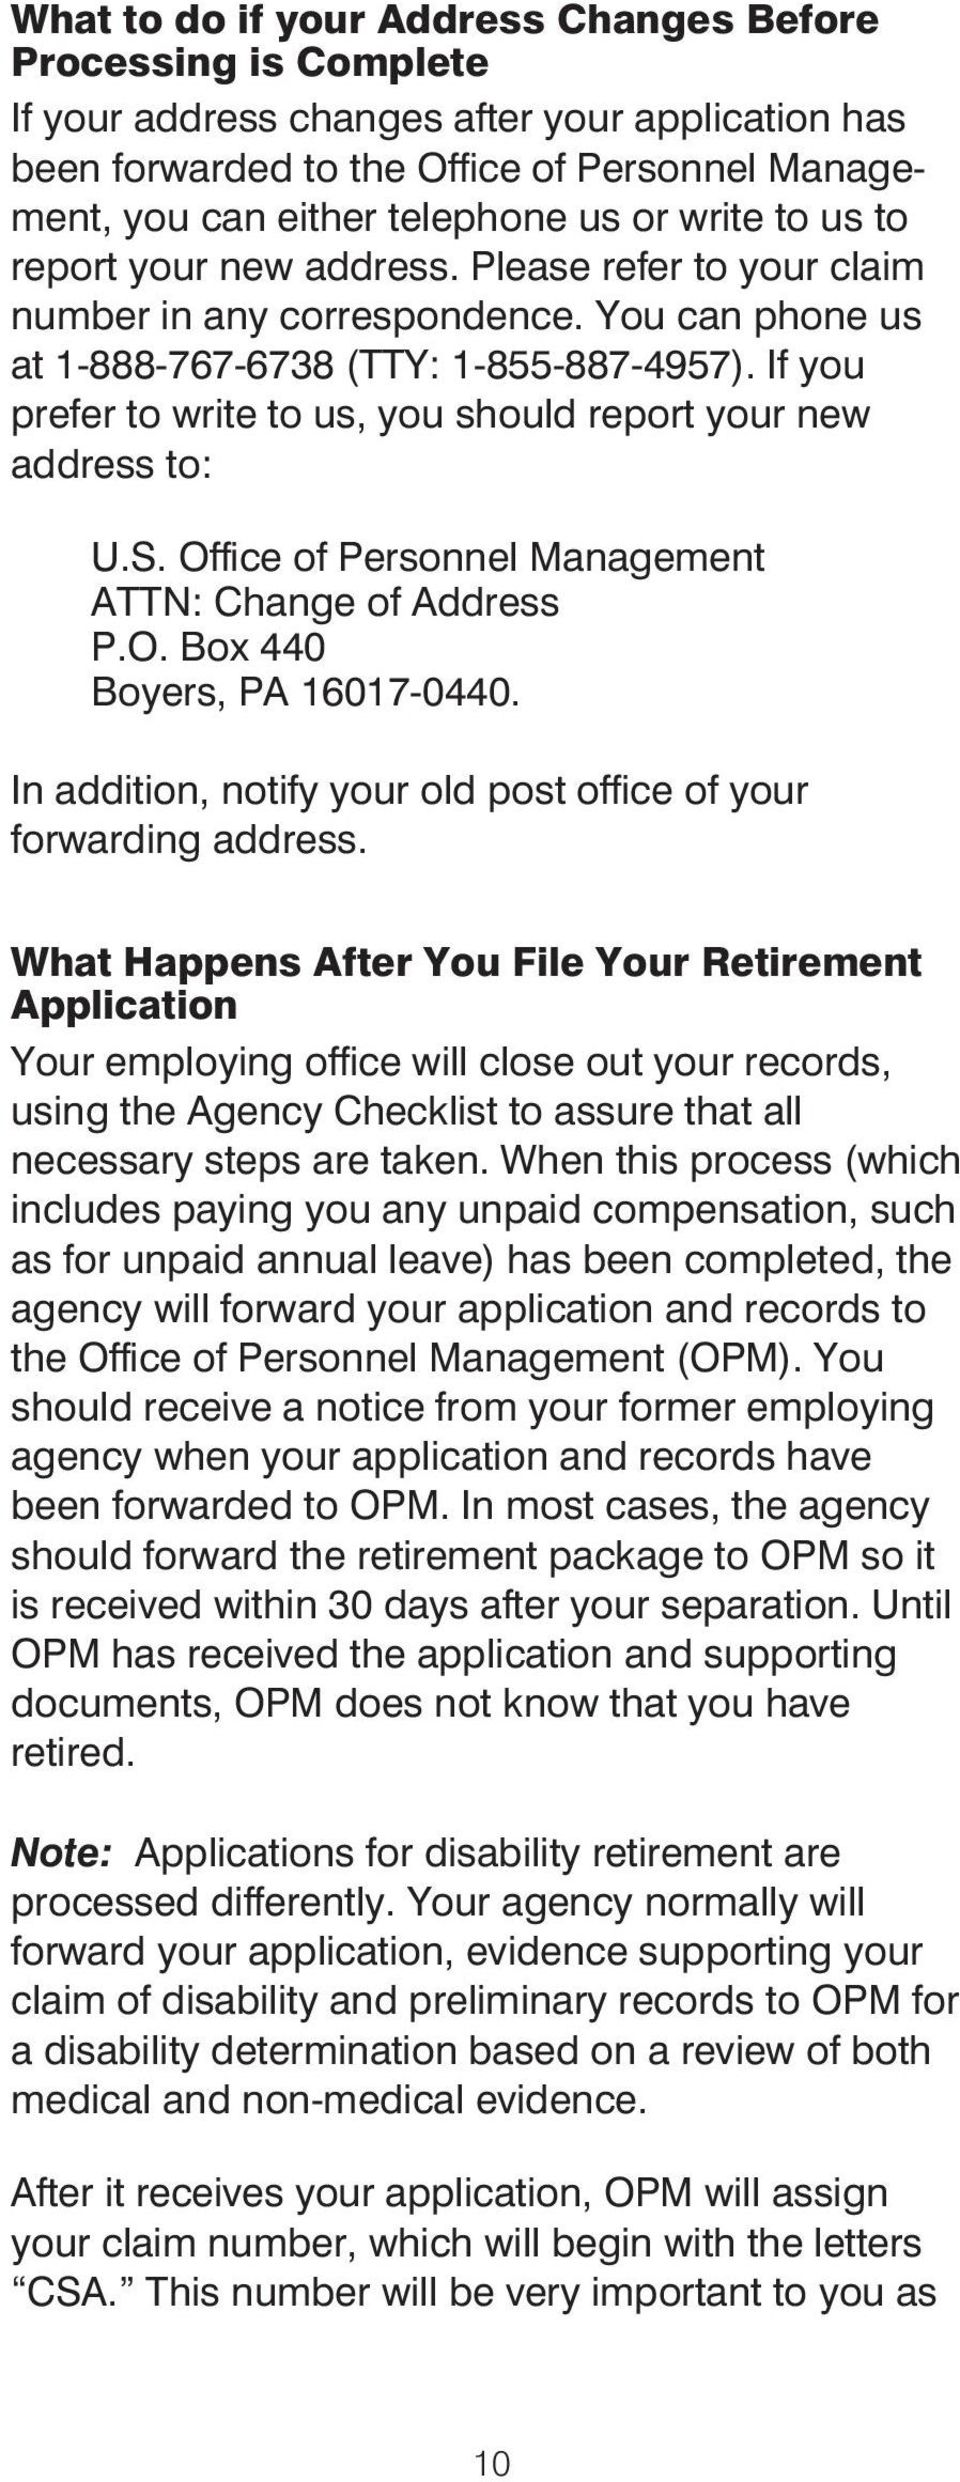 Applying for Immediate Retirement Under the Federal